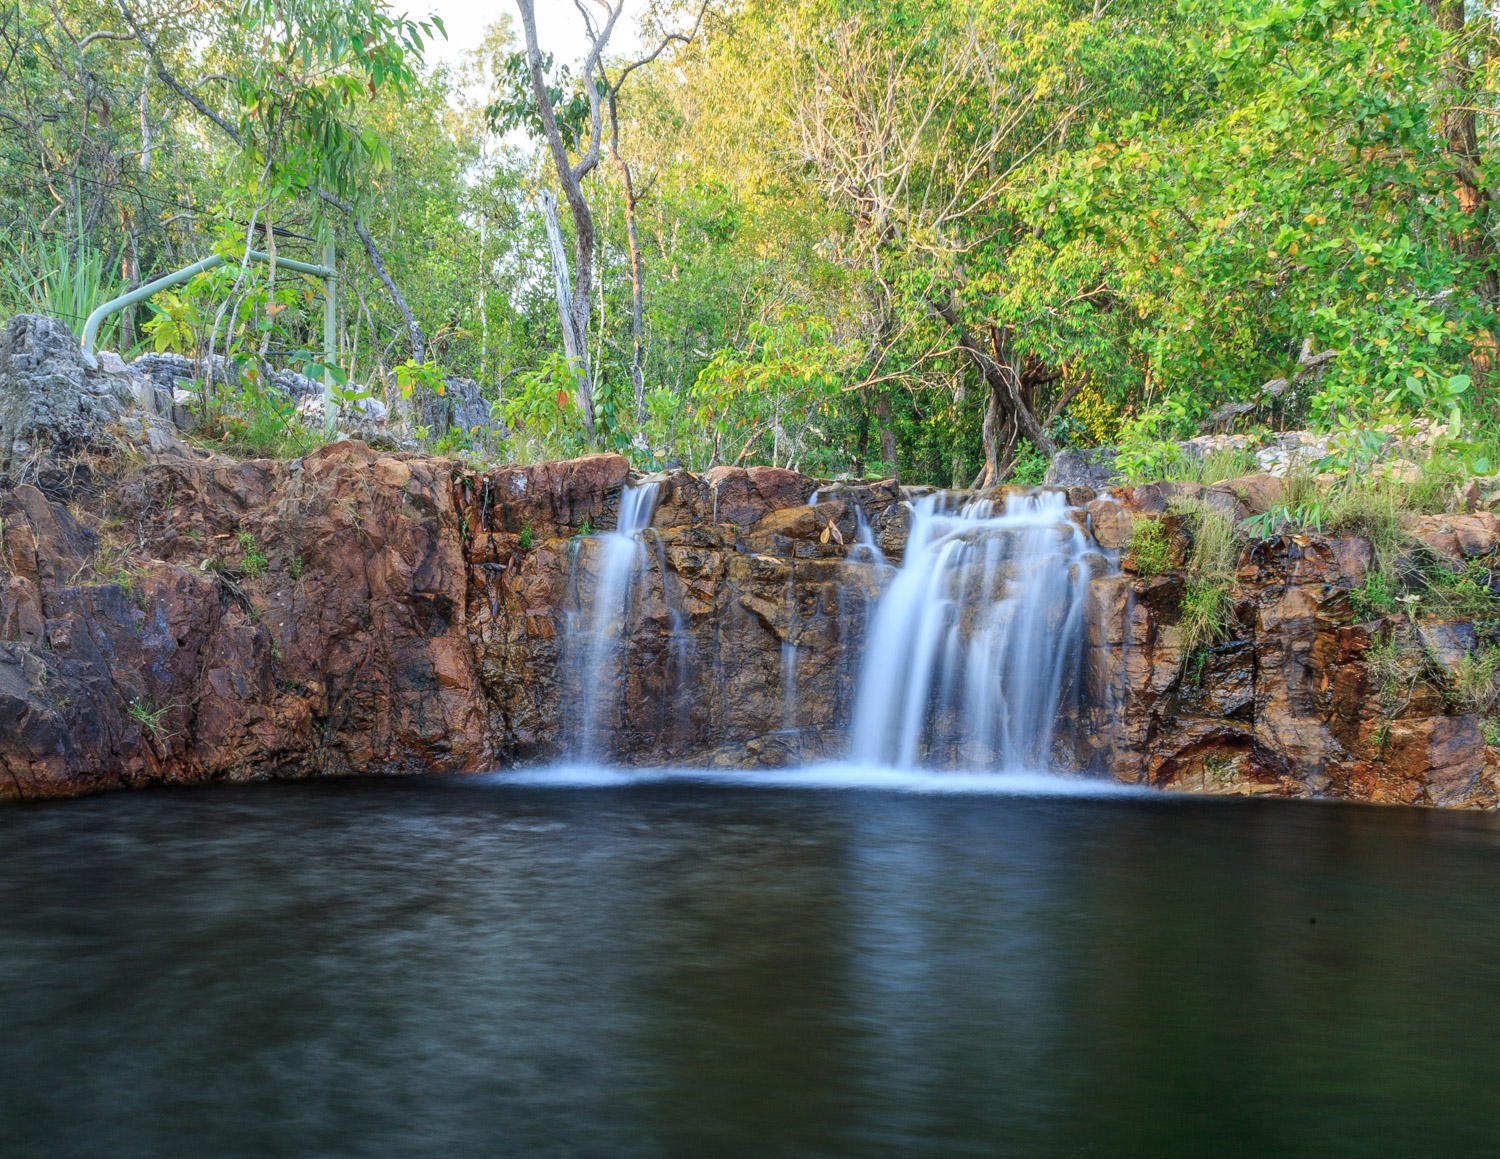 Best time to visit Litchfield National Park: The National Parks